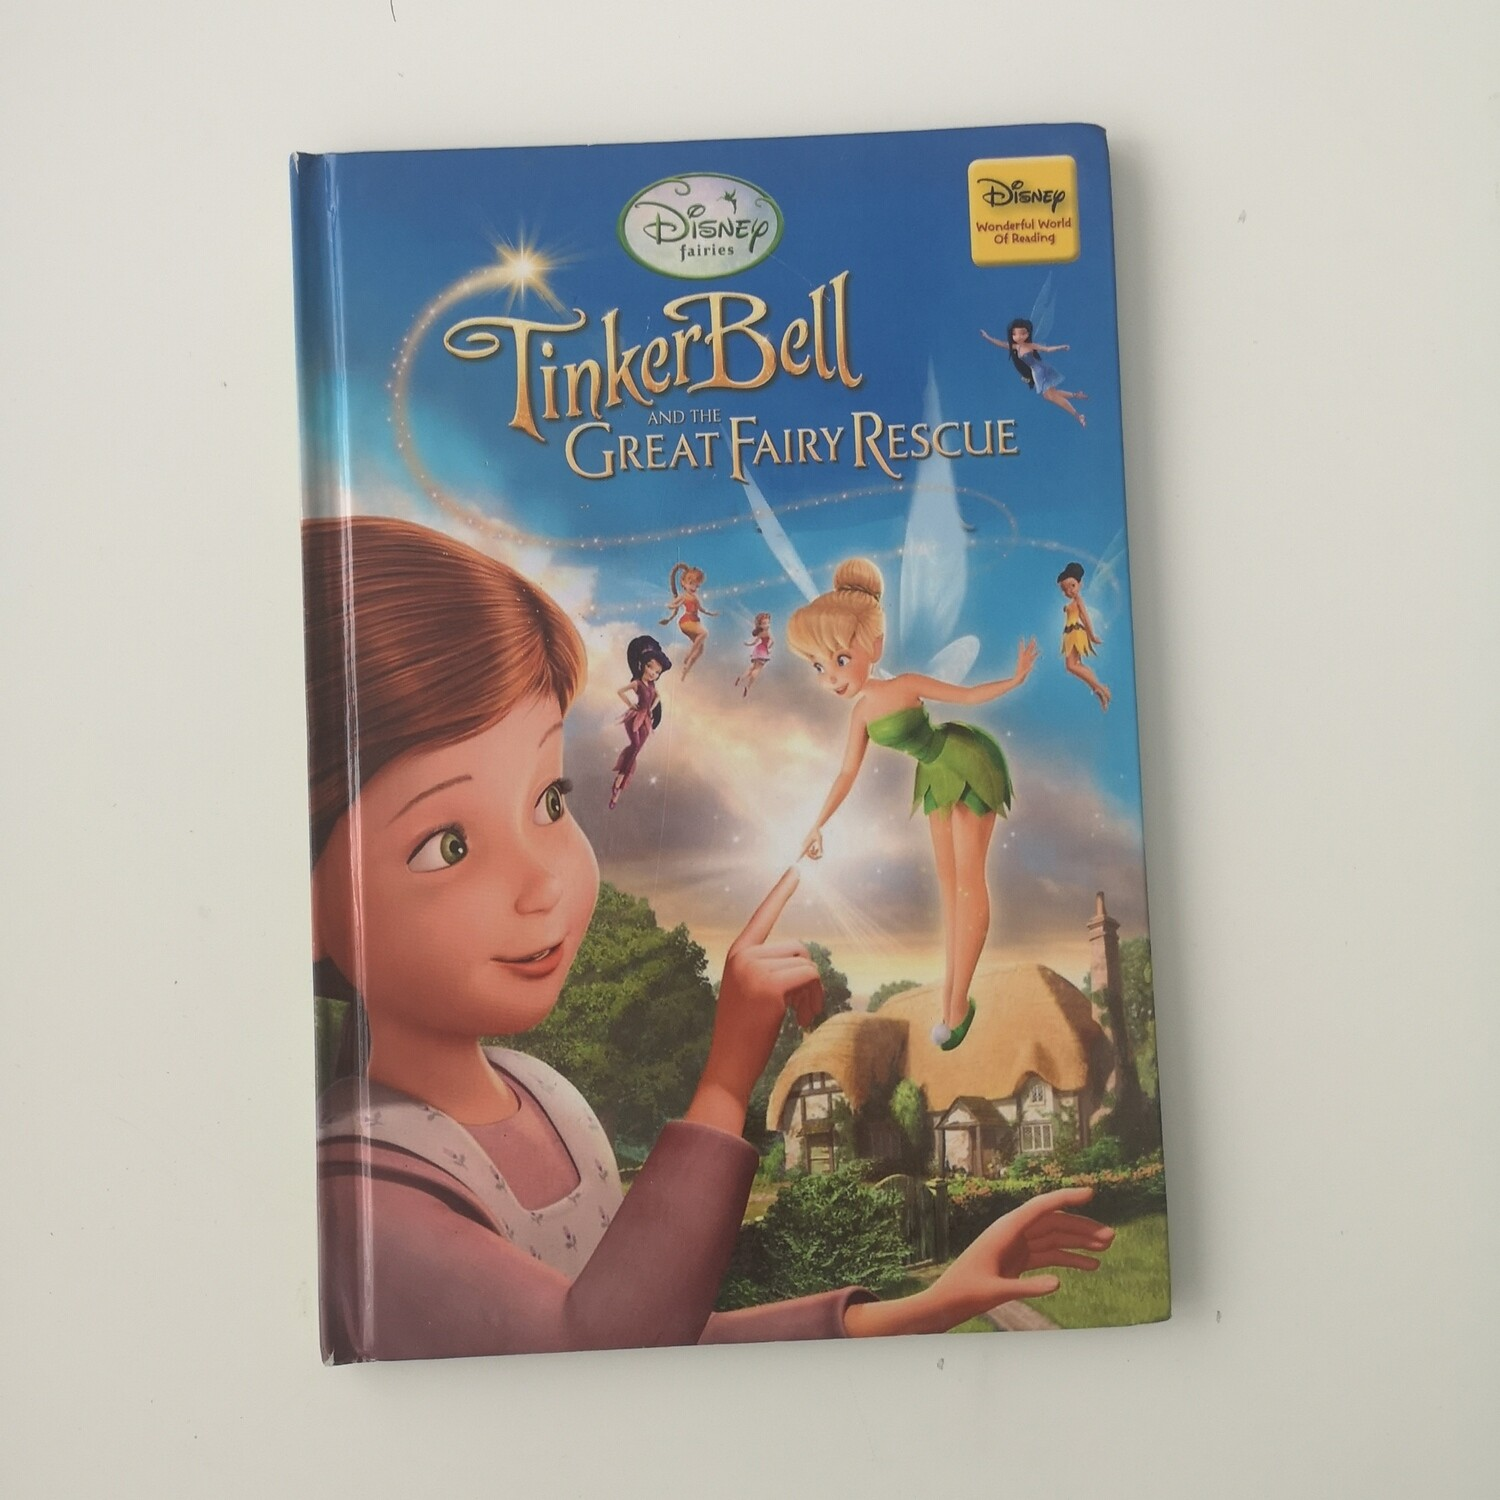 Tinkerbell Notebook - Fairy Rescue